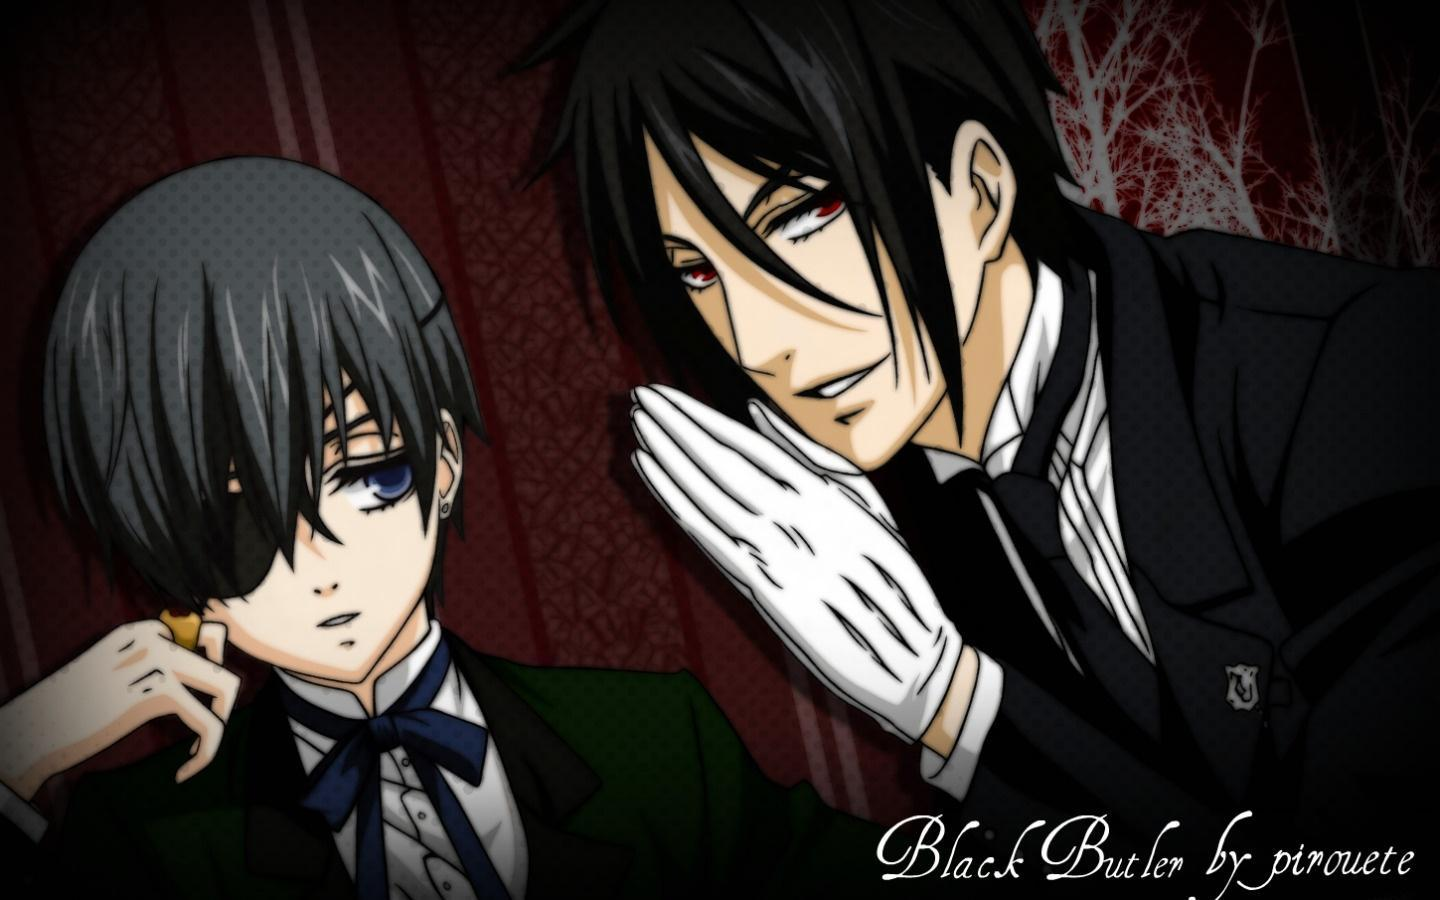 Which Character of Black Butler are you?